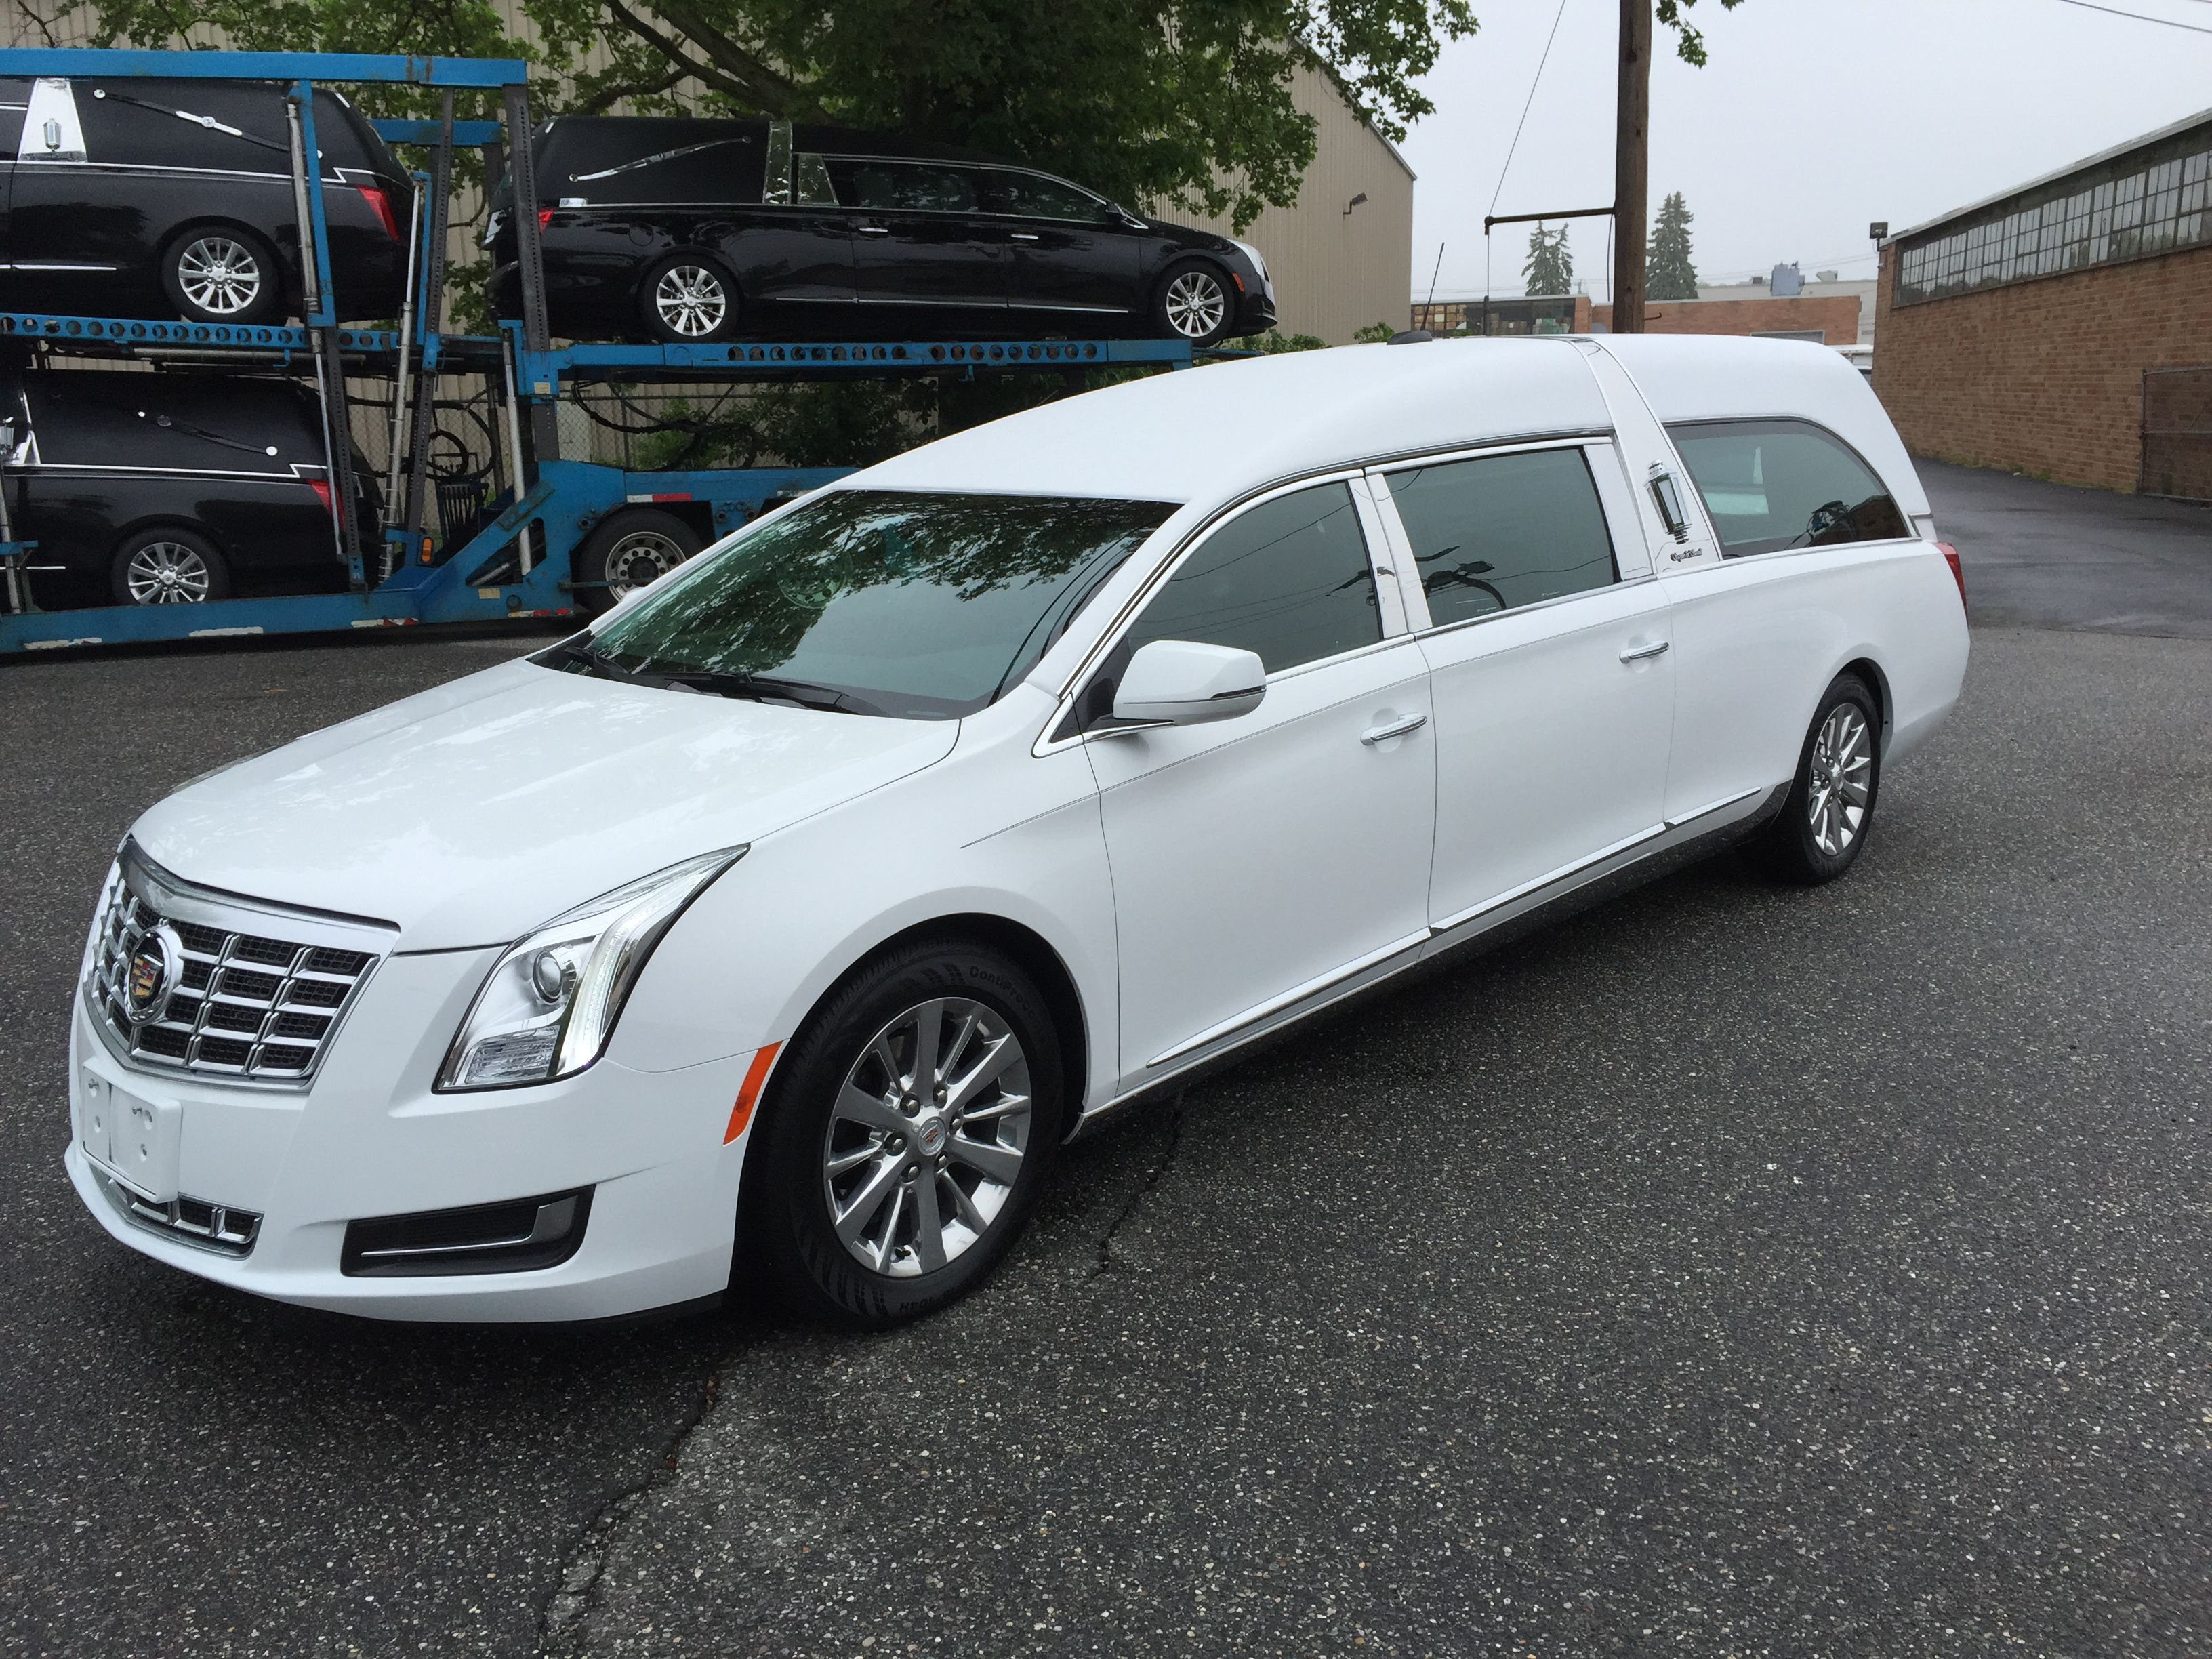 2016 Hearse Google Search Autos Cars Pinterest Ambulance And